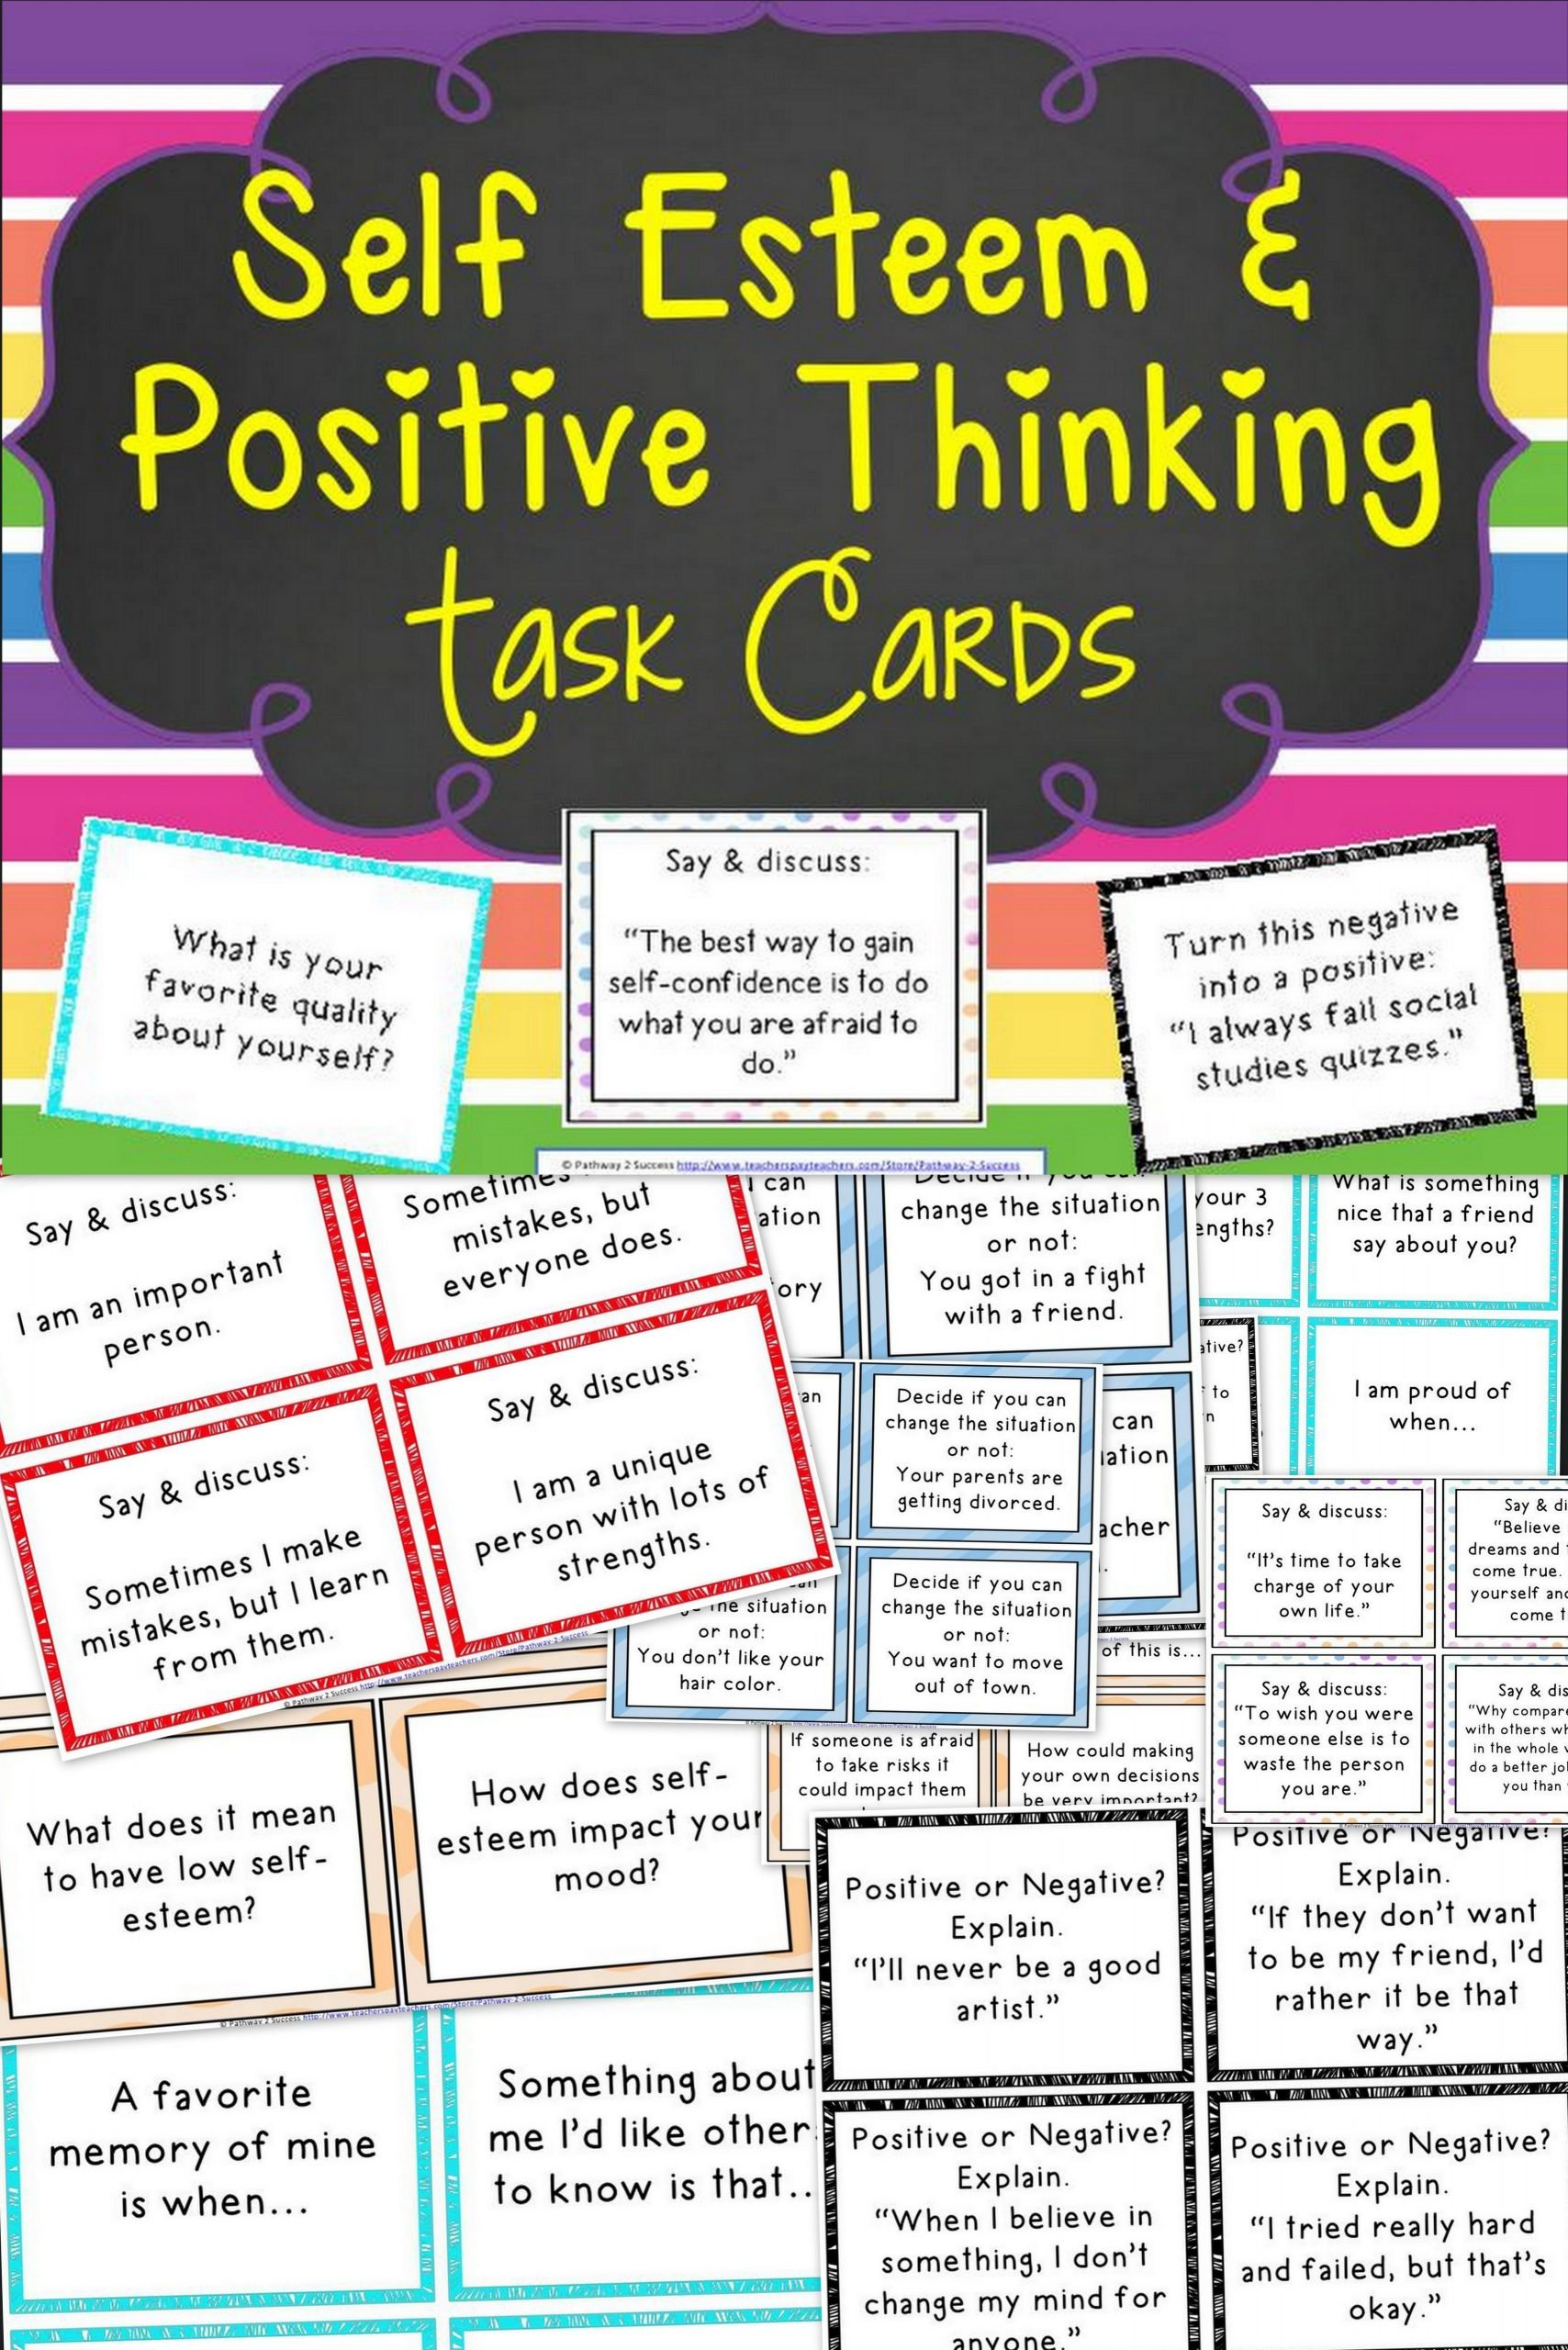 Positive Self Esteem Worksheets Self Esteem and Positive Thinking Task Cards Distance